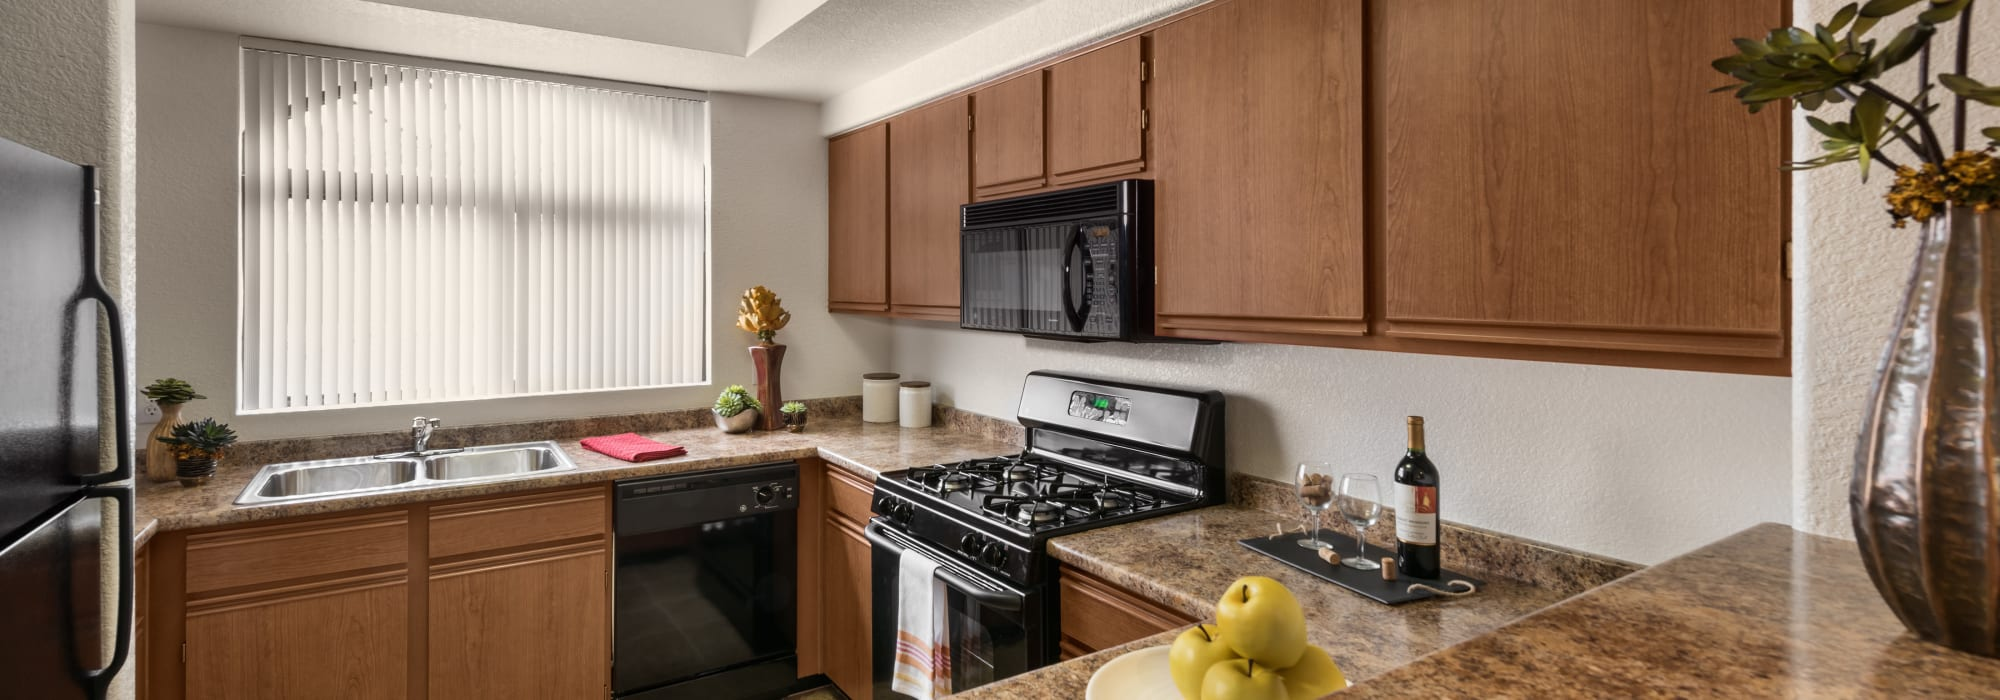 Upgraded kitchen with appliances at San Prado in Glendale, Arizona